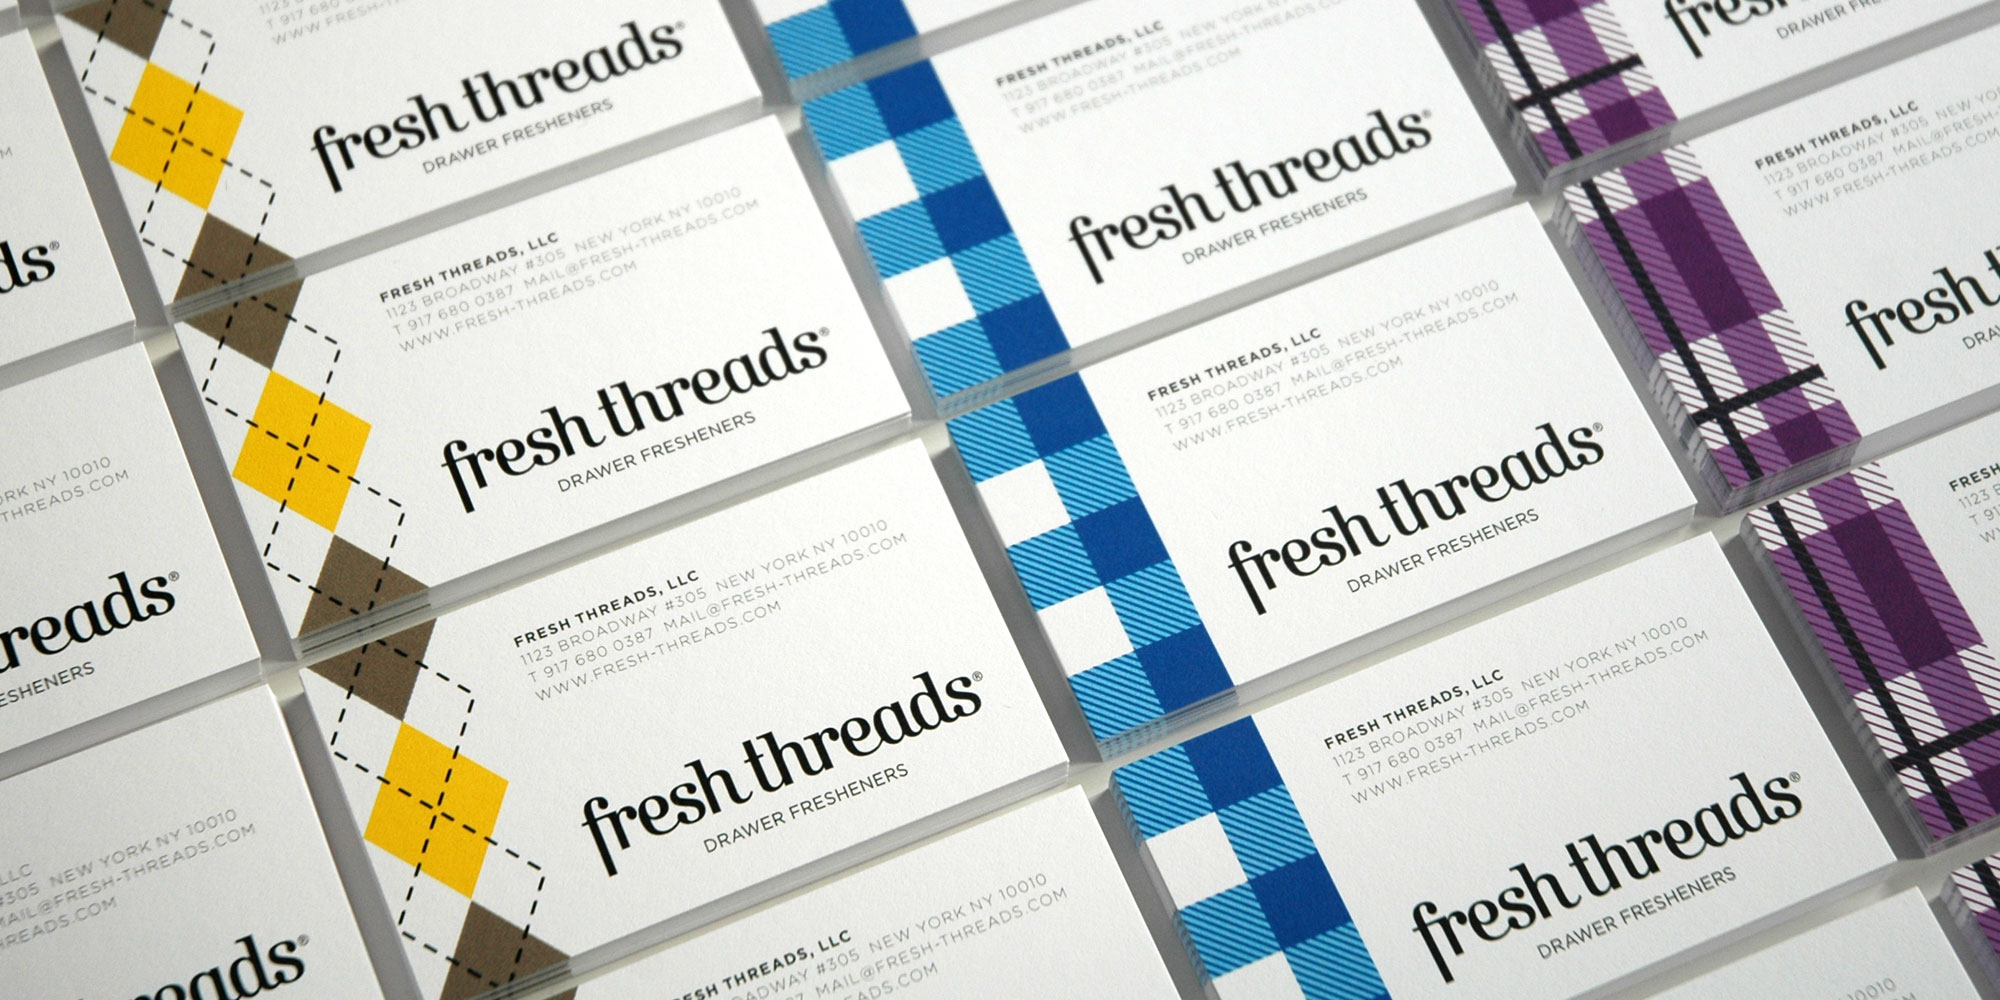 Fresh Threads Business Cards